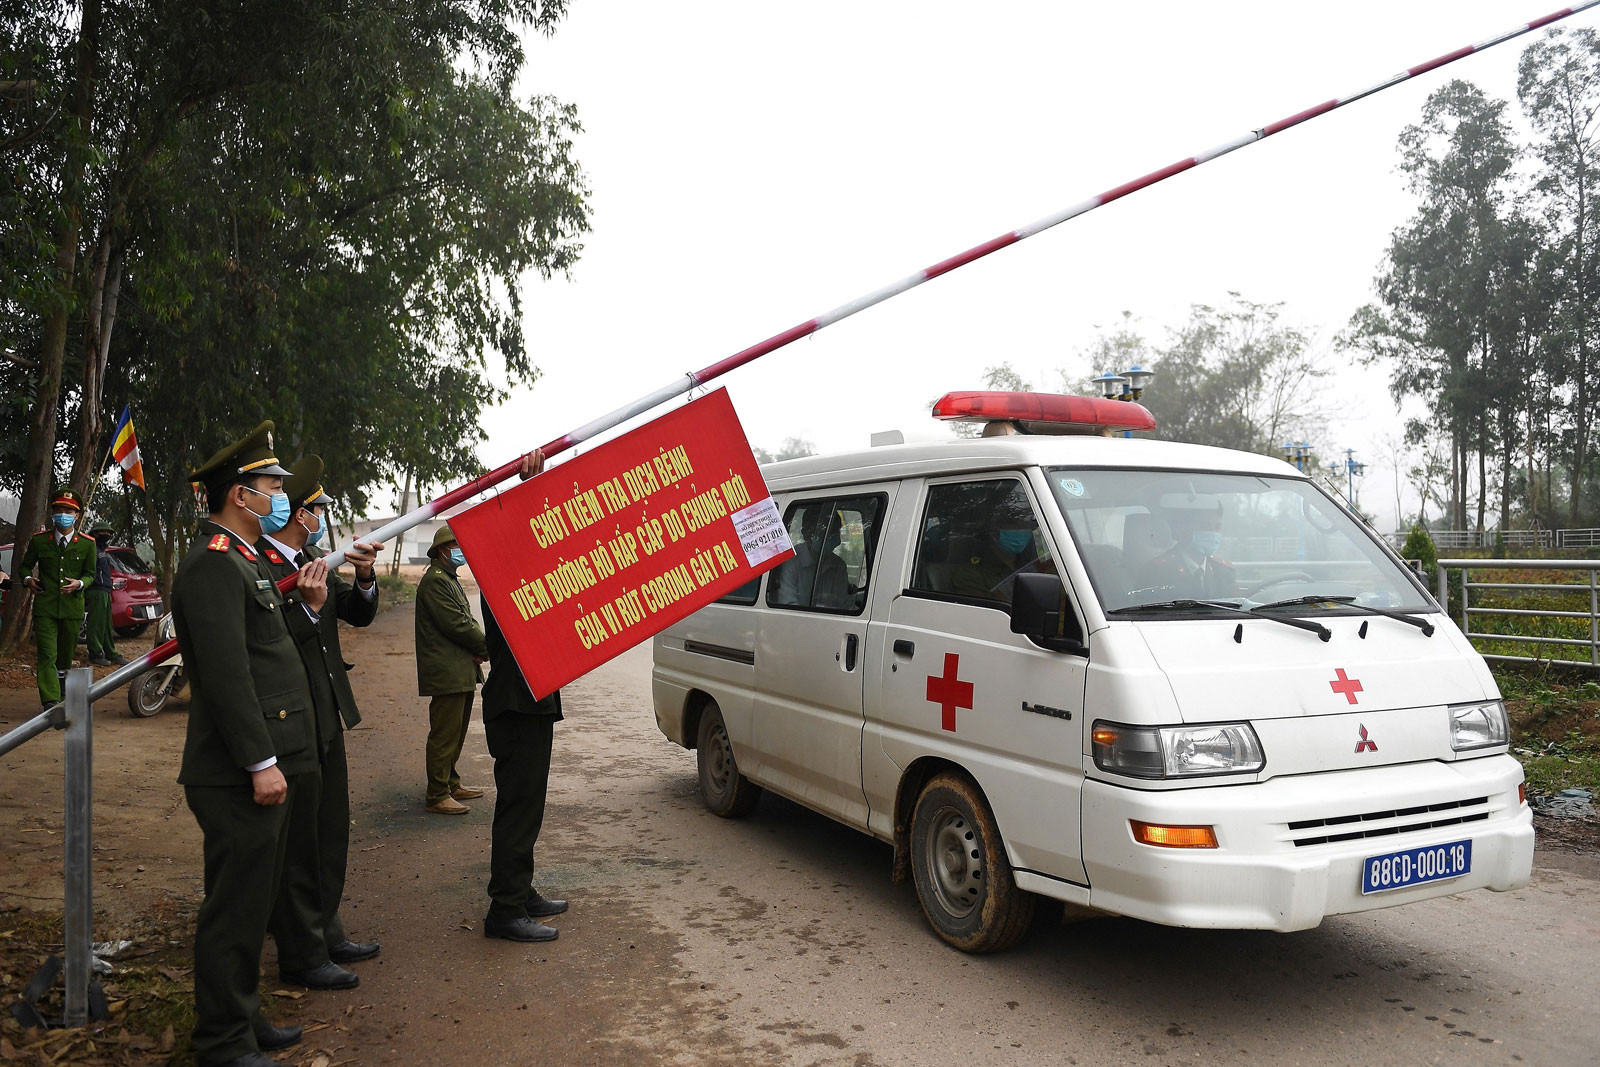 Police wearing face masks allow an ambulance to pass through a checkpoint at the Son Loi commune in Vinh Phuc province on February 13, 2020.